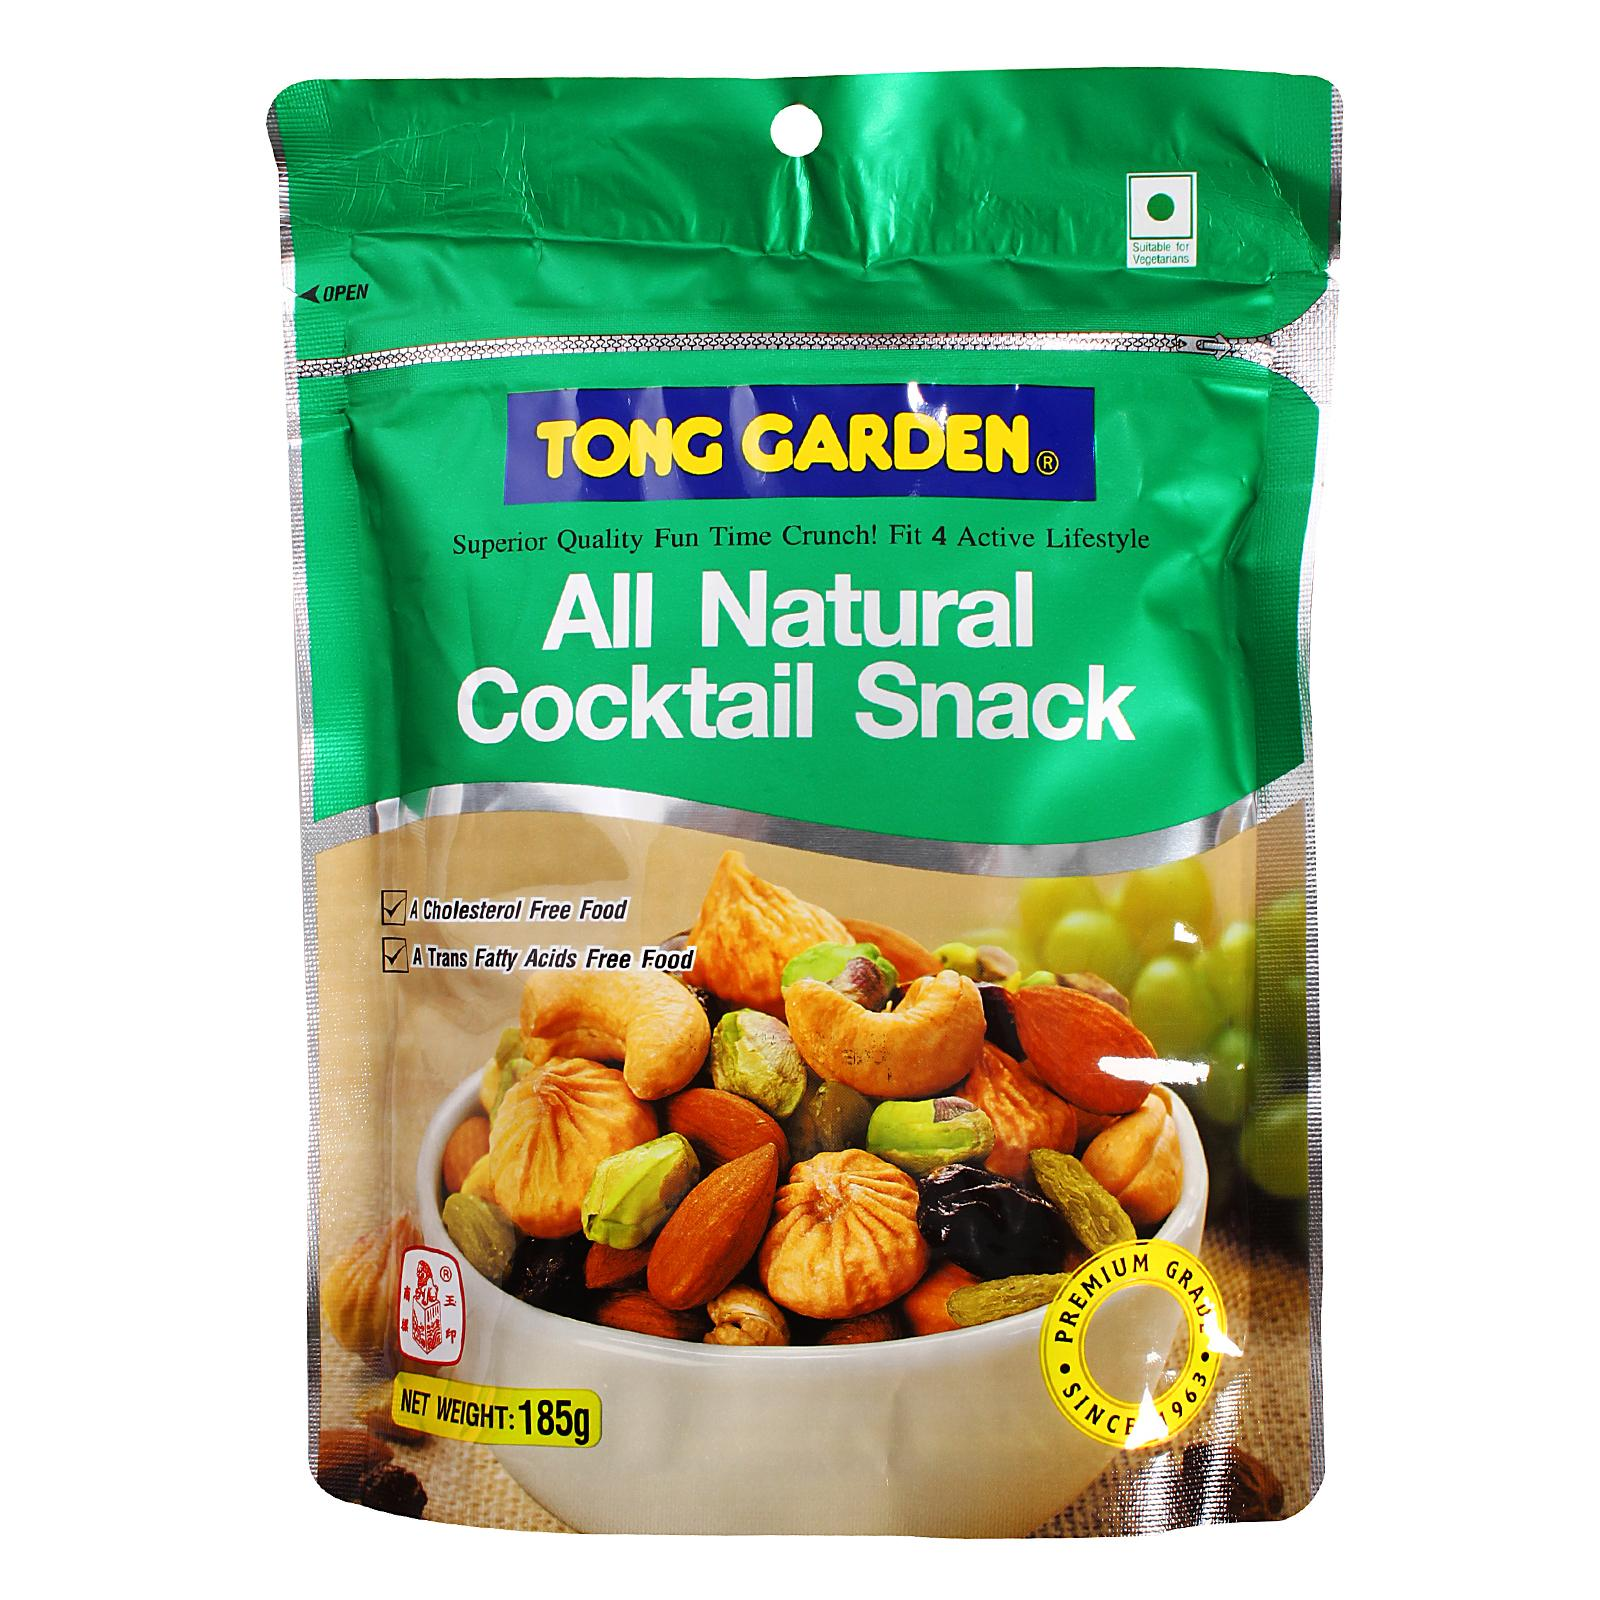 TONG GARDEN All Natural Cocktail Snacks 160g